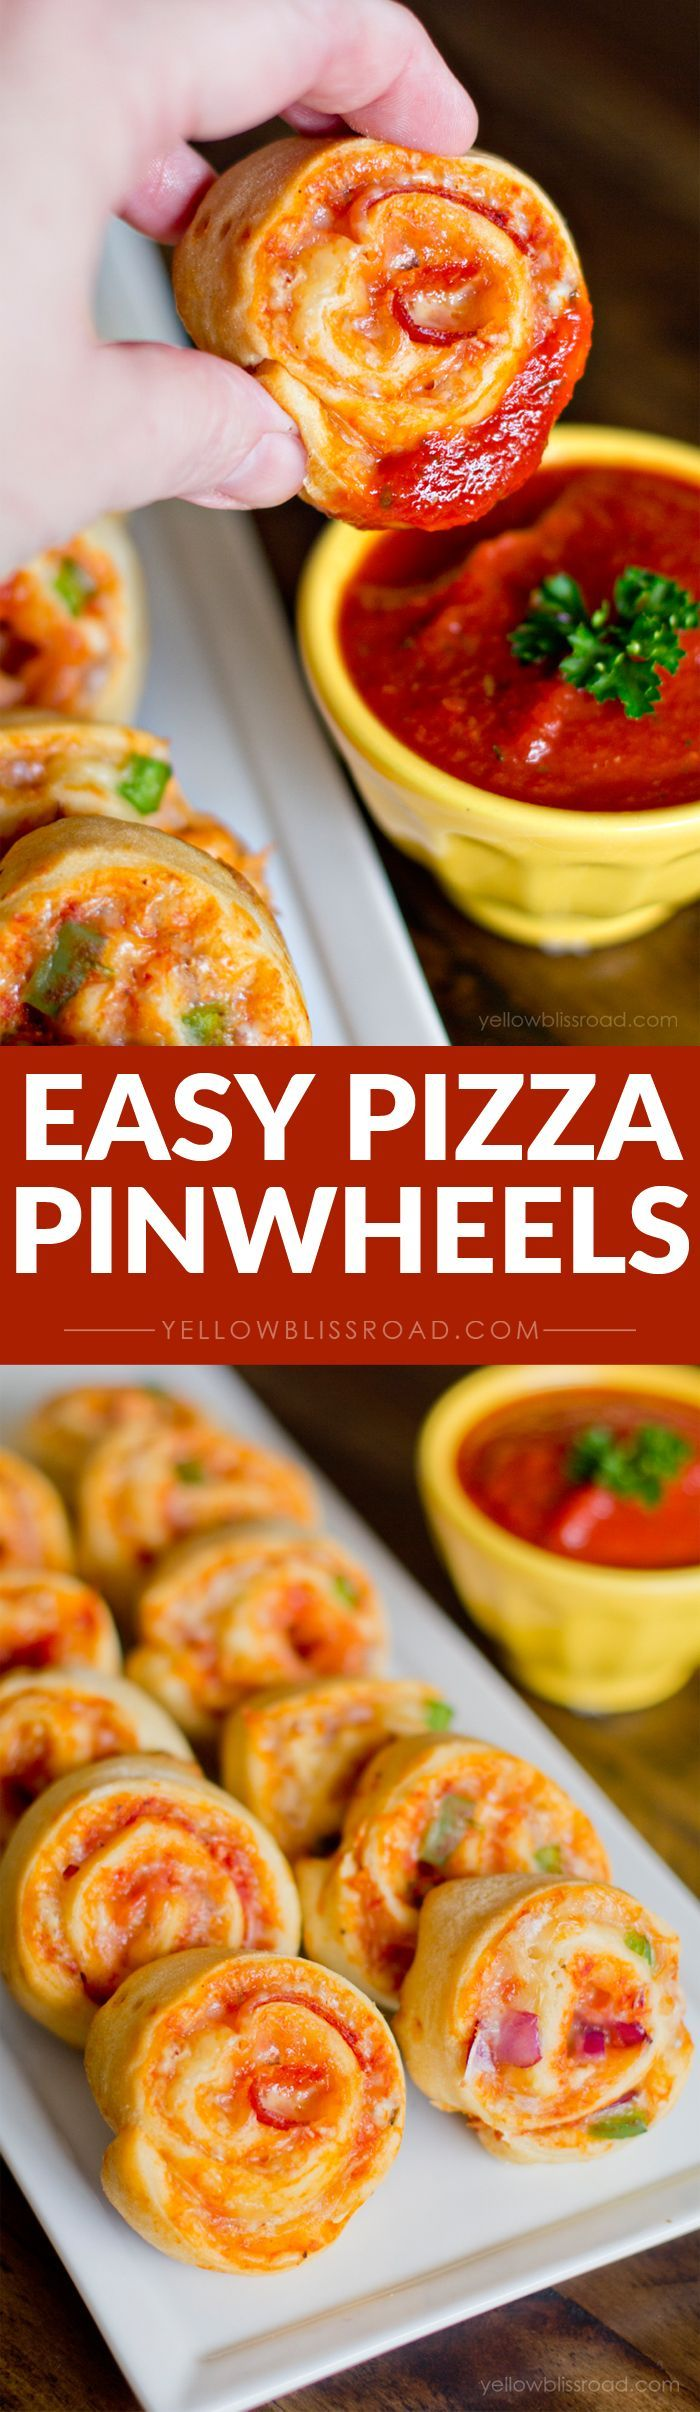 Easy Pizza Pinwheels – A fun snack and the perfect finger food!